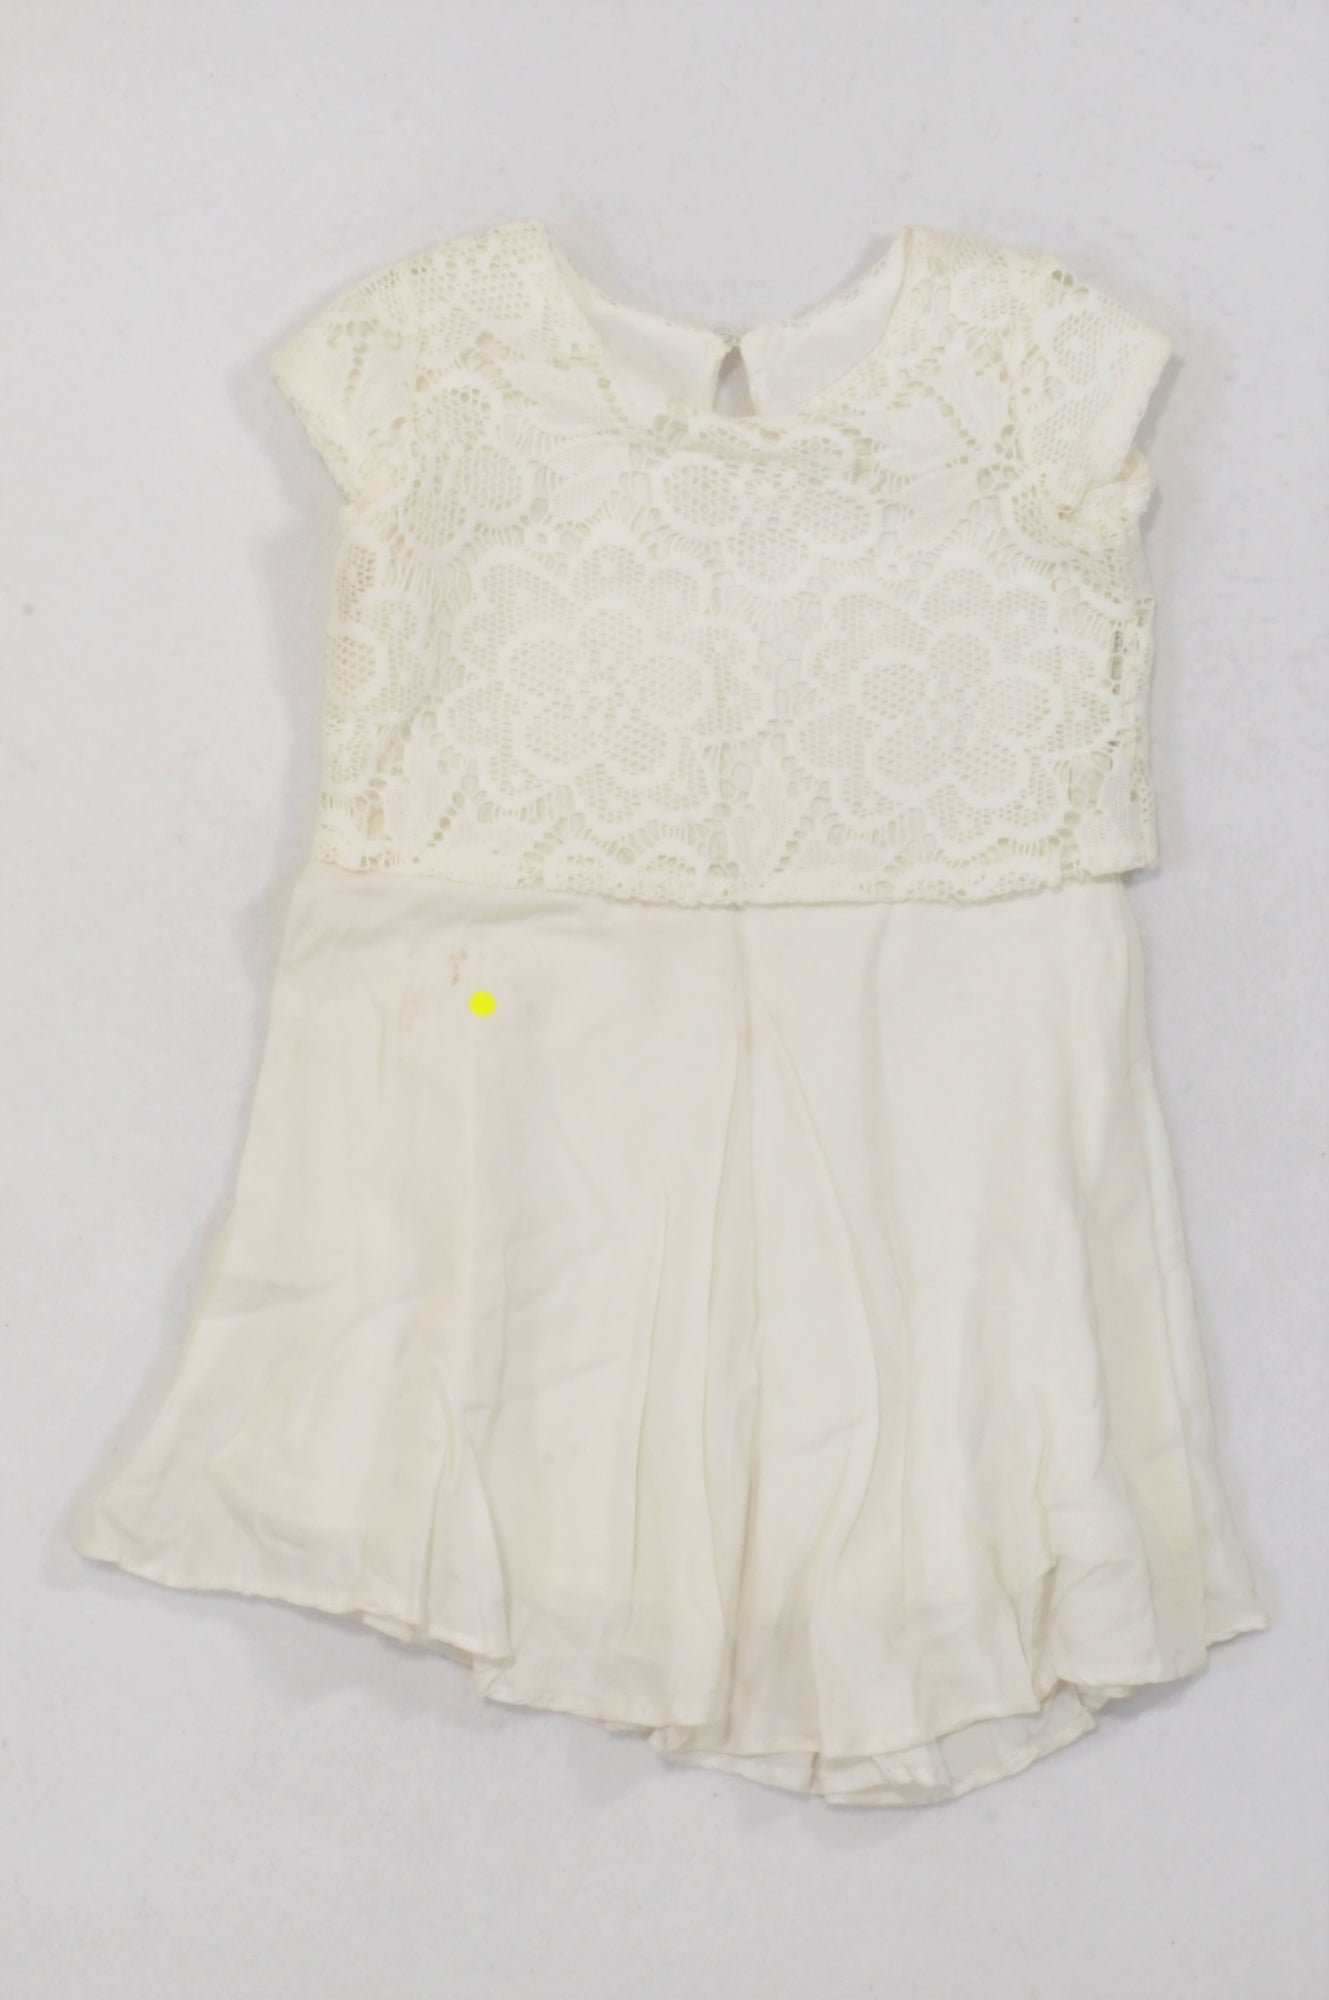 Woolworths Ivory Lace Inset Flowy Dress Girls 3-4 years